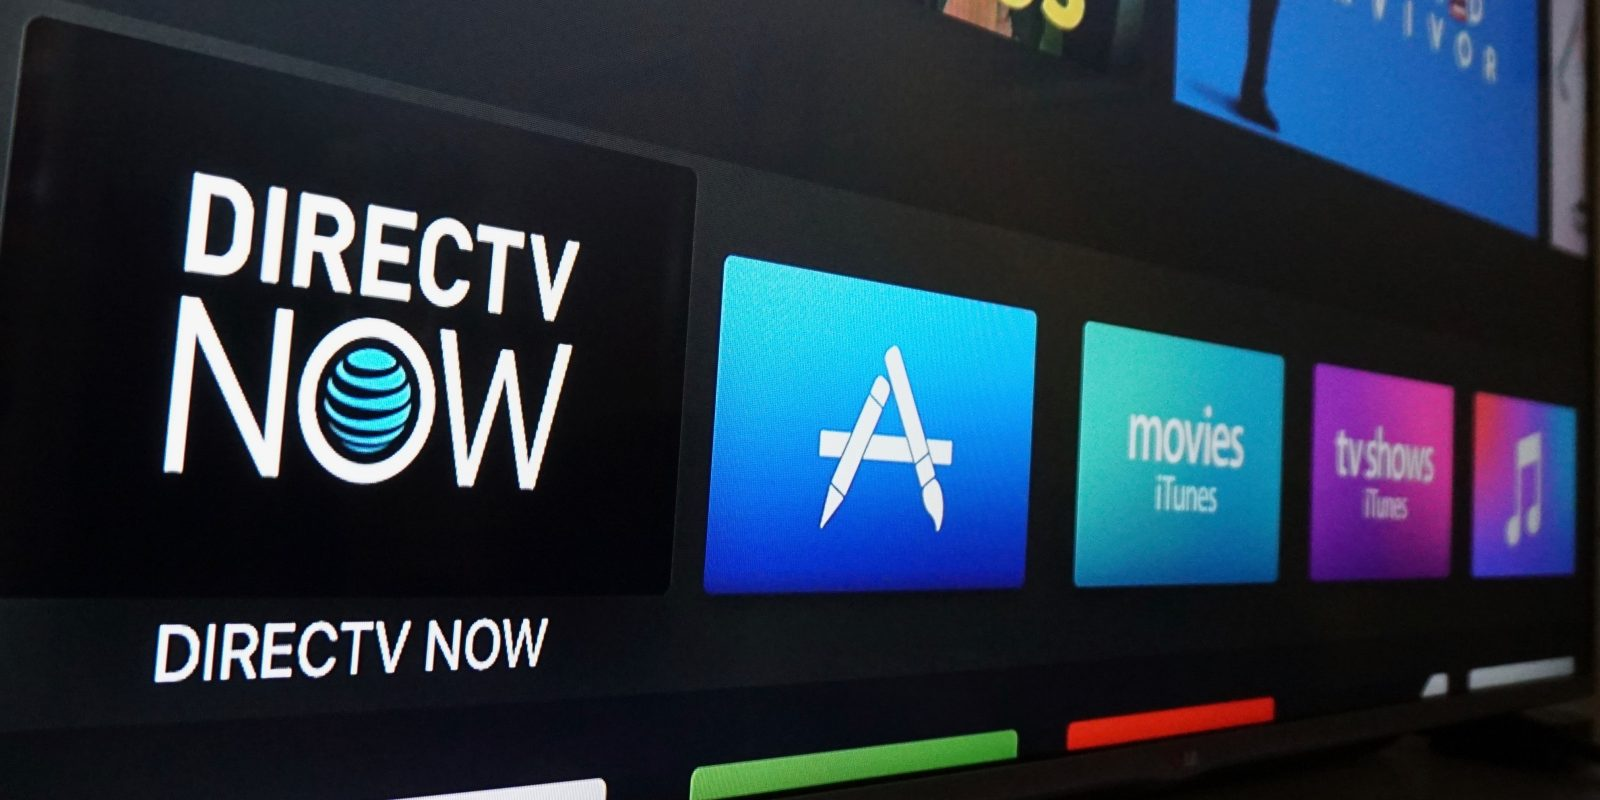 AT&T says revamped DirecTV Now w/ cloud DVR & more coming this spring